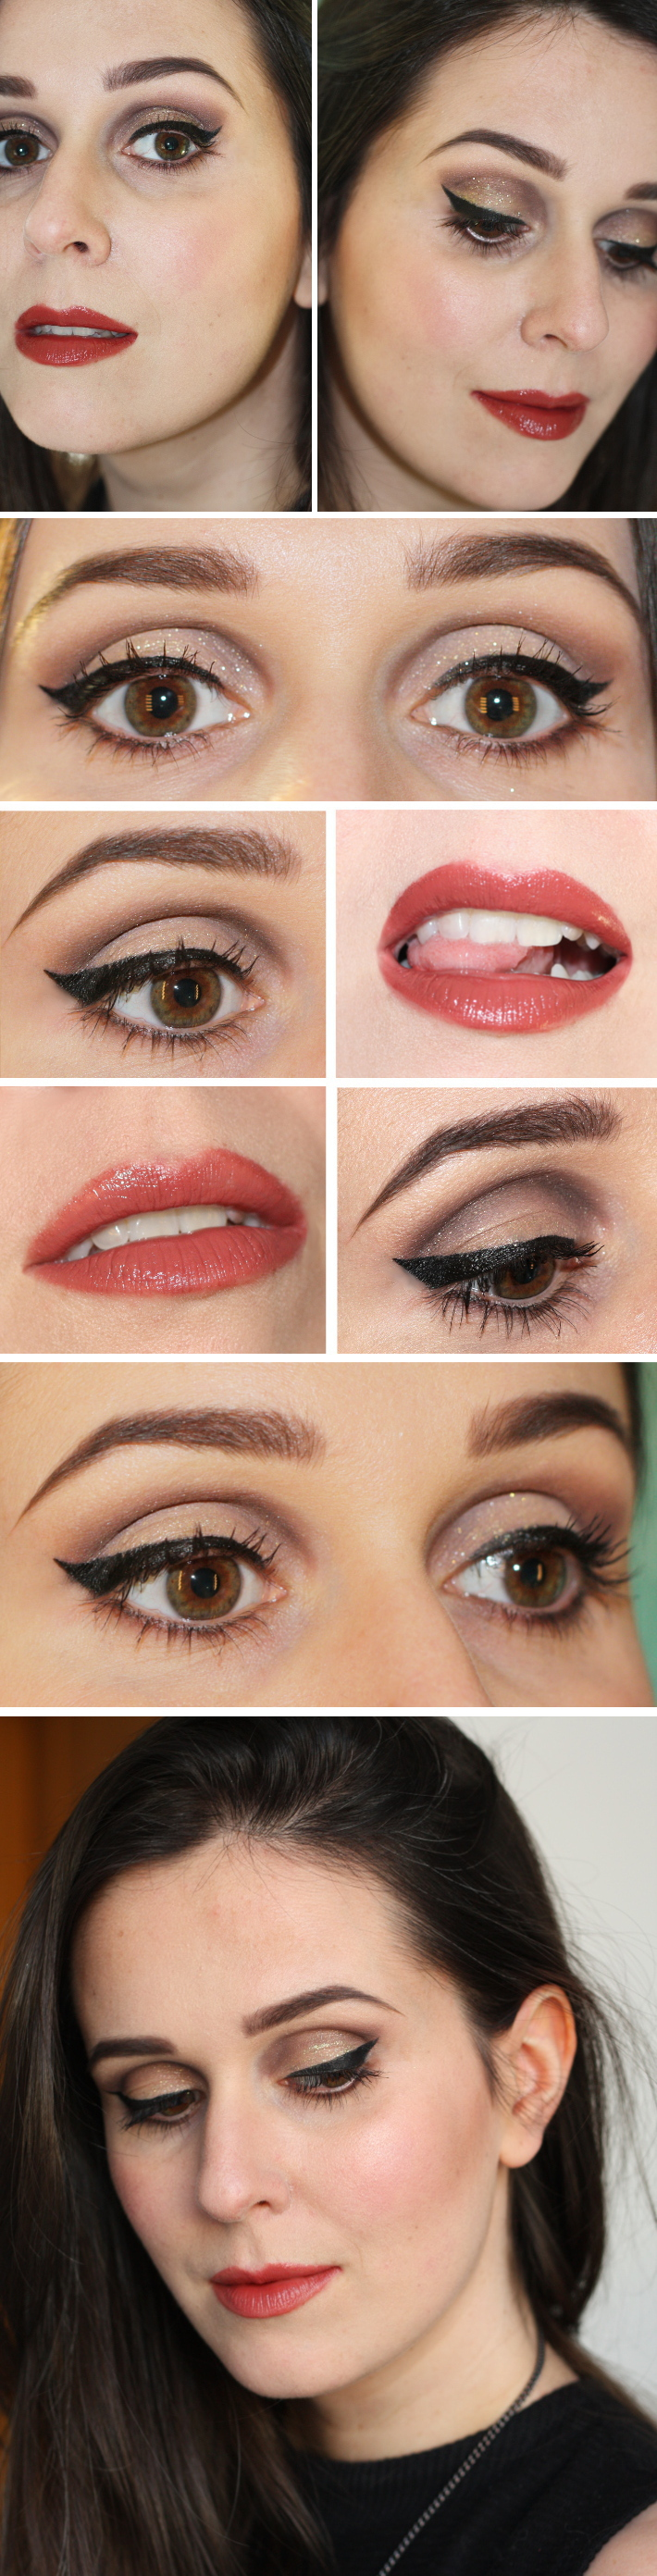 Beauty: vampy cat eye with defined crease